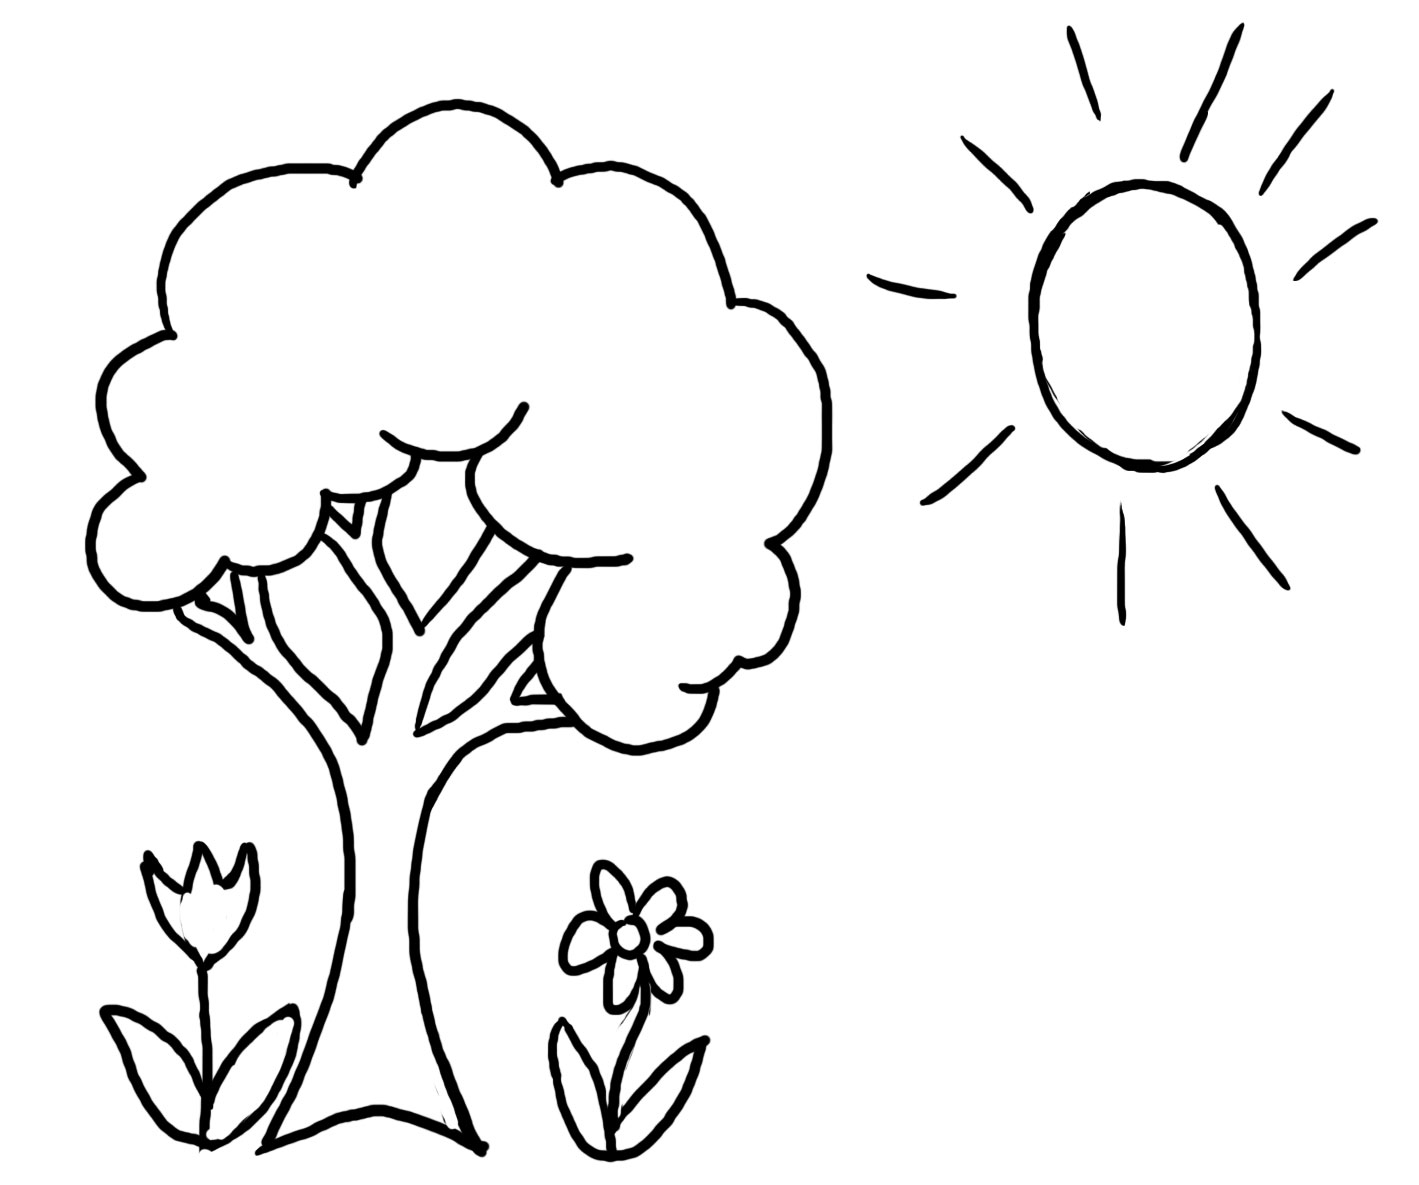 1419x1185 Sensational Design Tree Coloring Page Pages For Adults With Roots